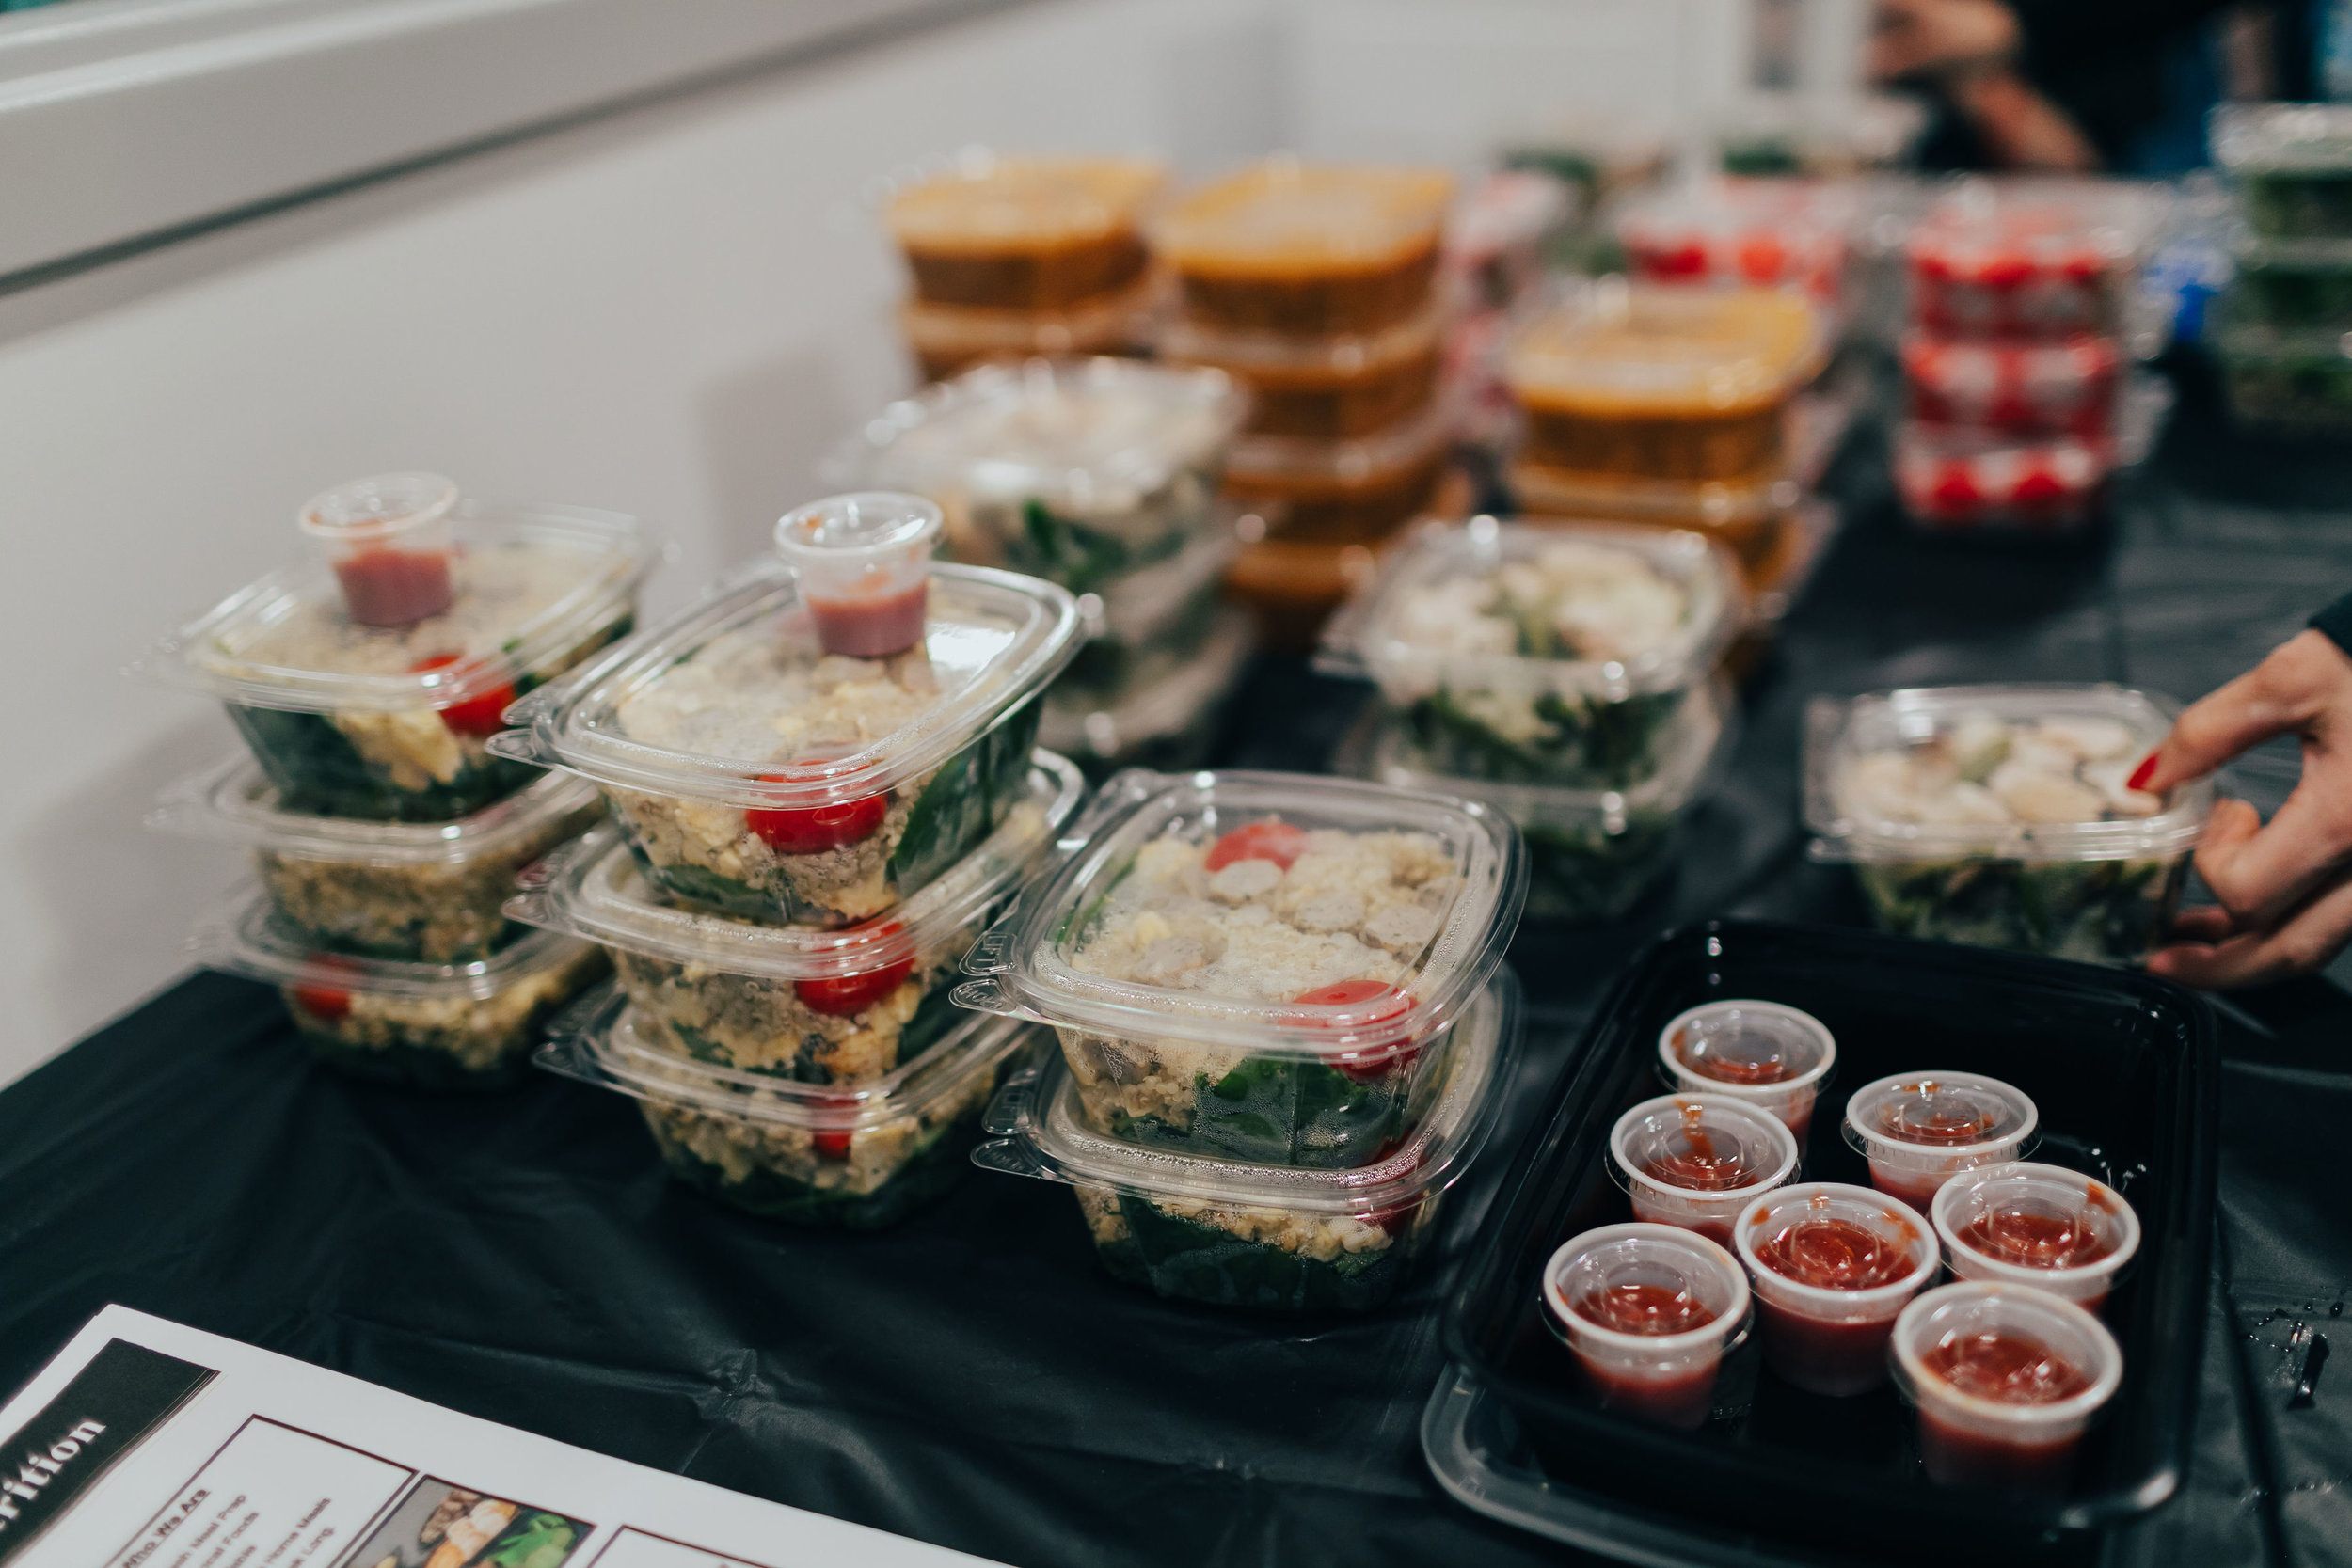 Contact us to learn about our meal preparation service!